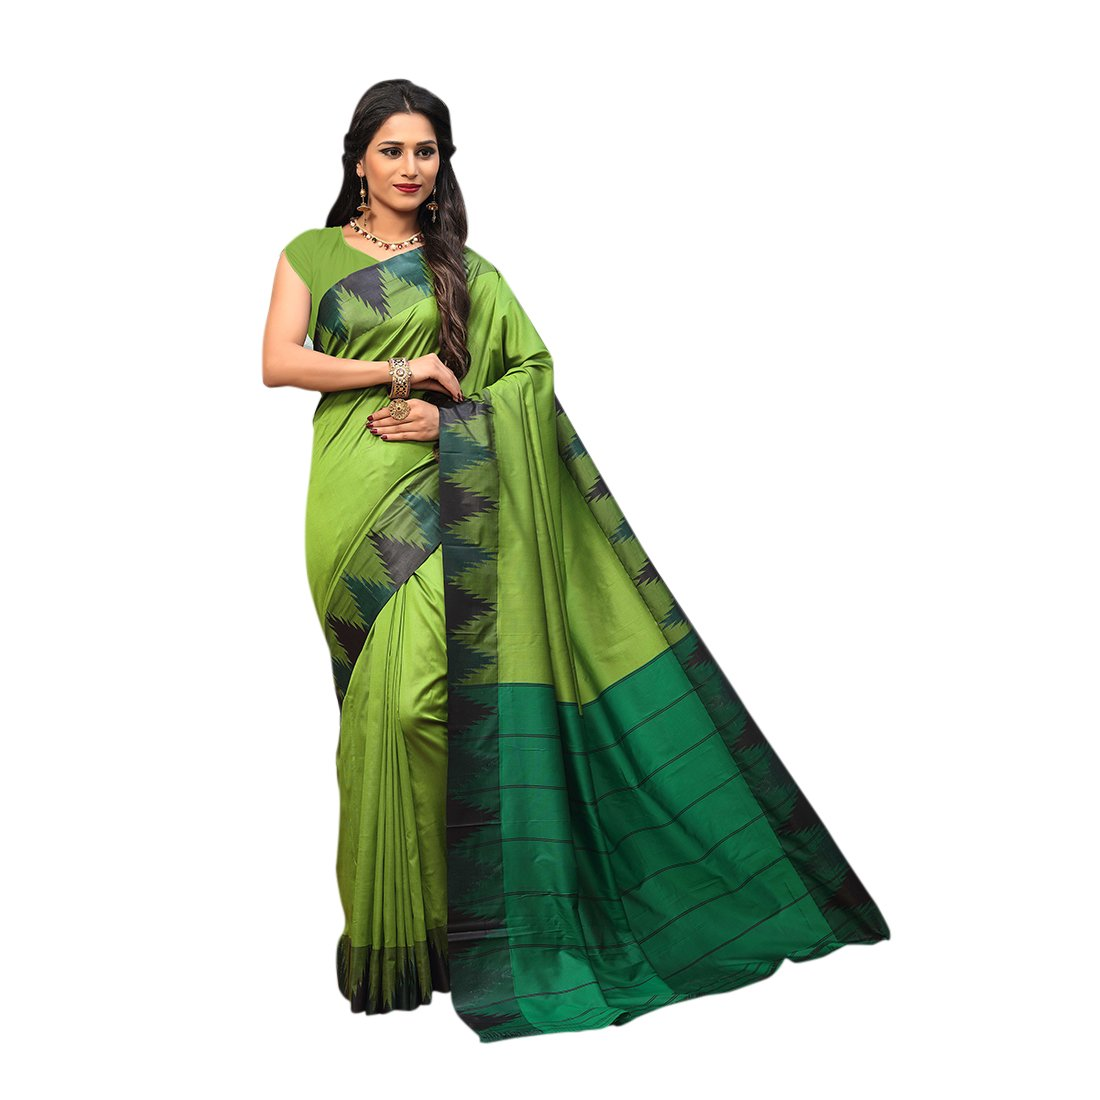 d9db46527a2966 Craftsvilla Women s Silk saree Blend with Zari border Work Traditional  Green Saree with blouse piece